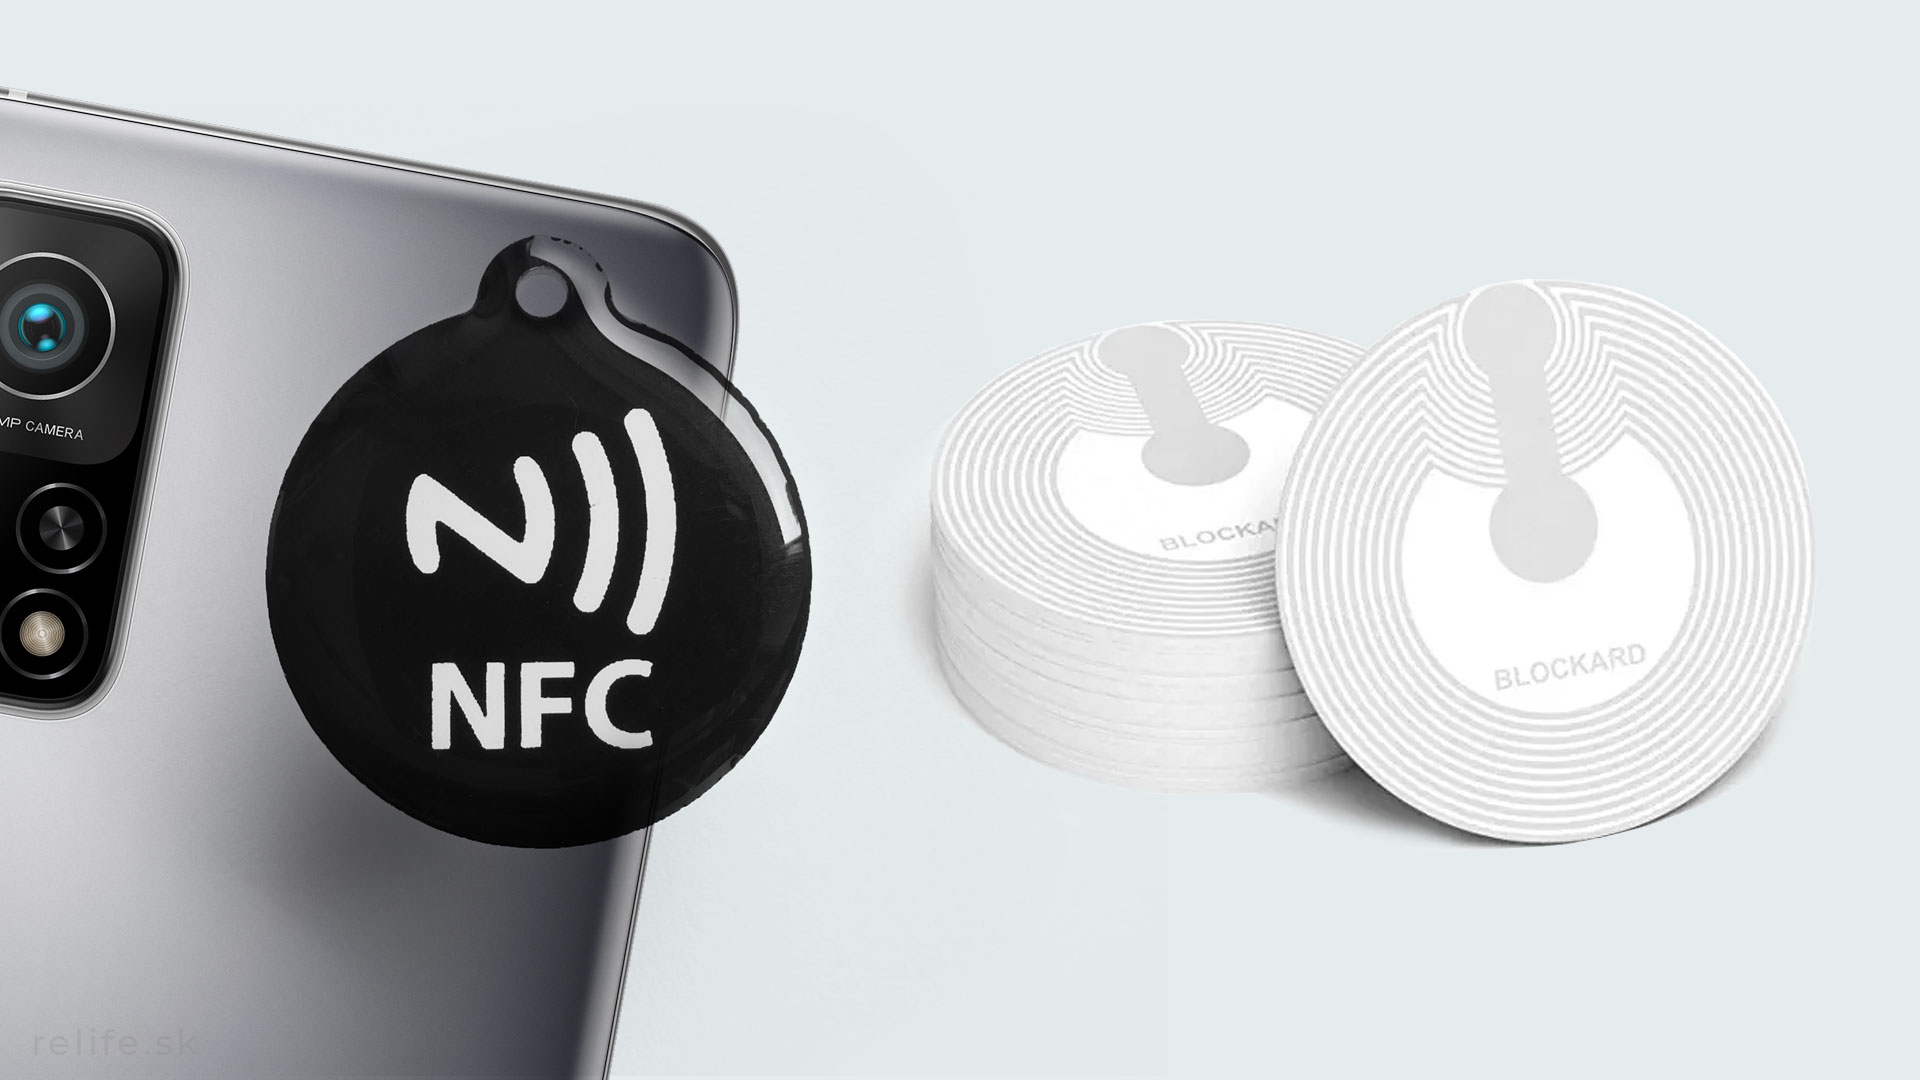 NFC tags - tap